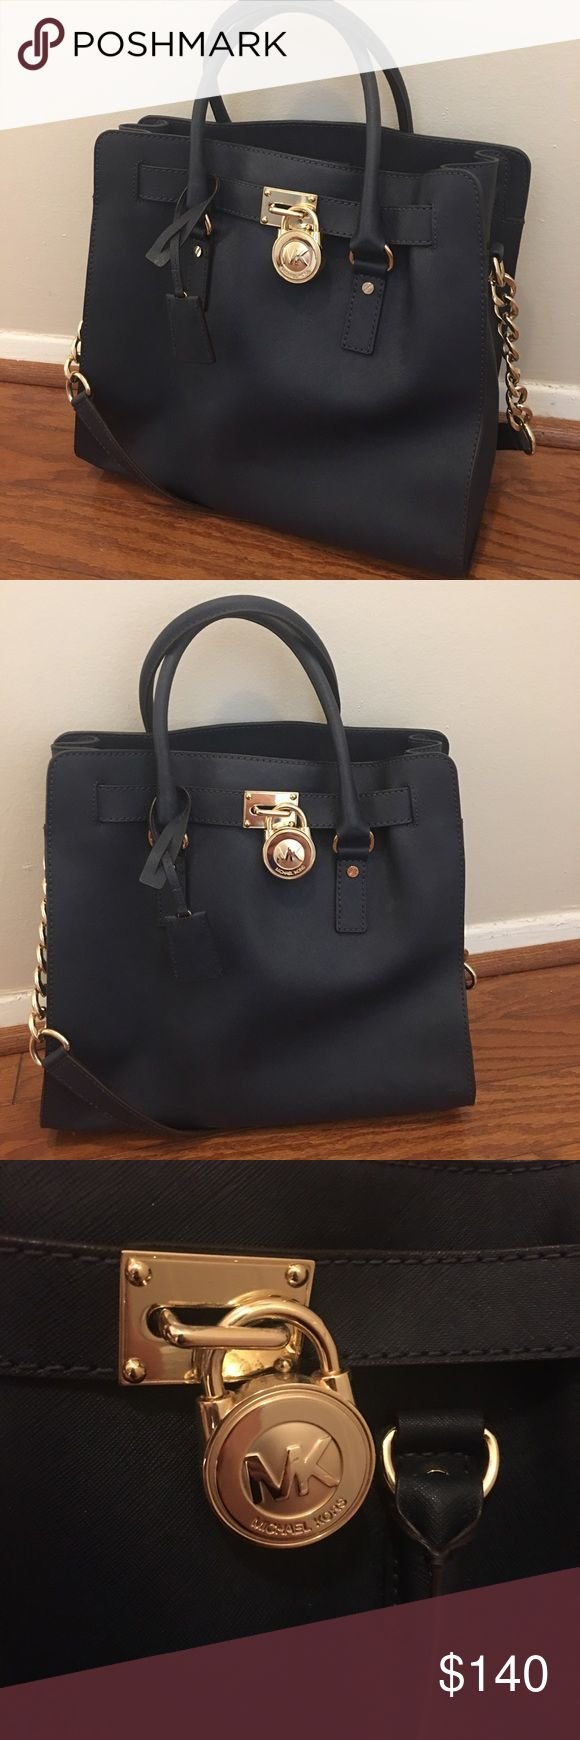 A Michael Kors 'Hamilton'!!! LOVE this bag. Navy blue MK Hamilton. In perfect condition. Used only a few times. This is a great summer work bag (very nautical). Navy blue goes with everything. Gold hardware. Michael Kors Bags Shoulder Bags